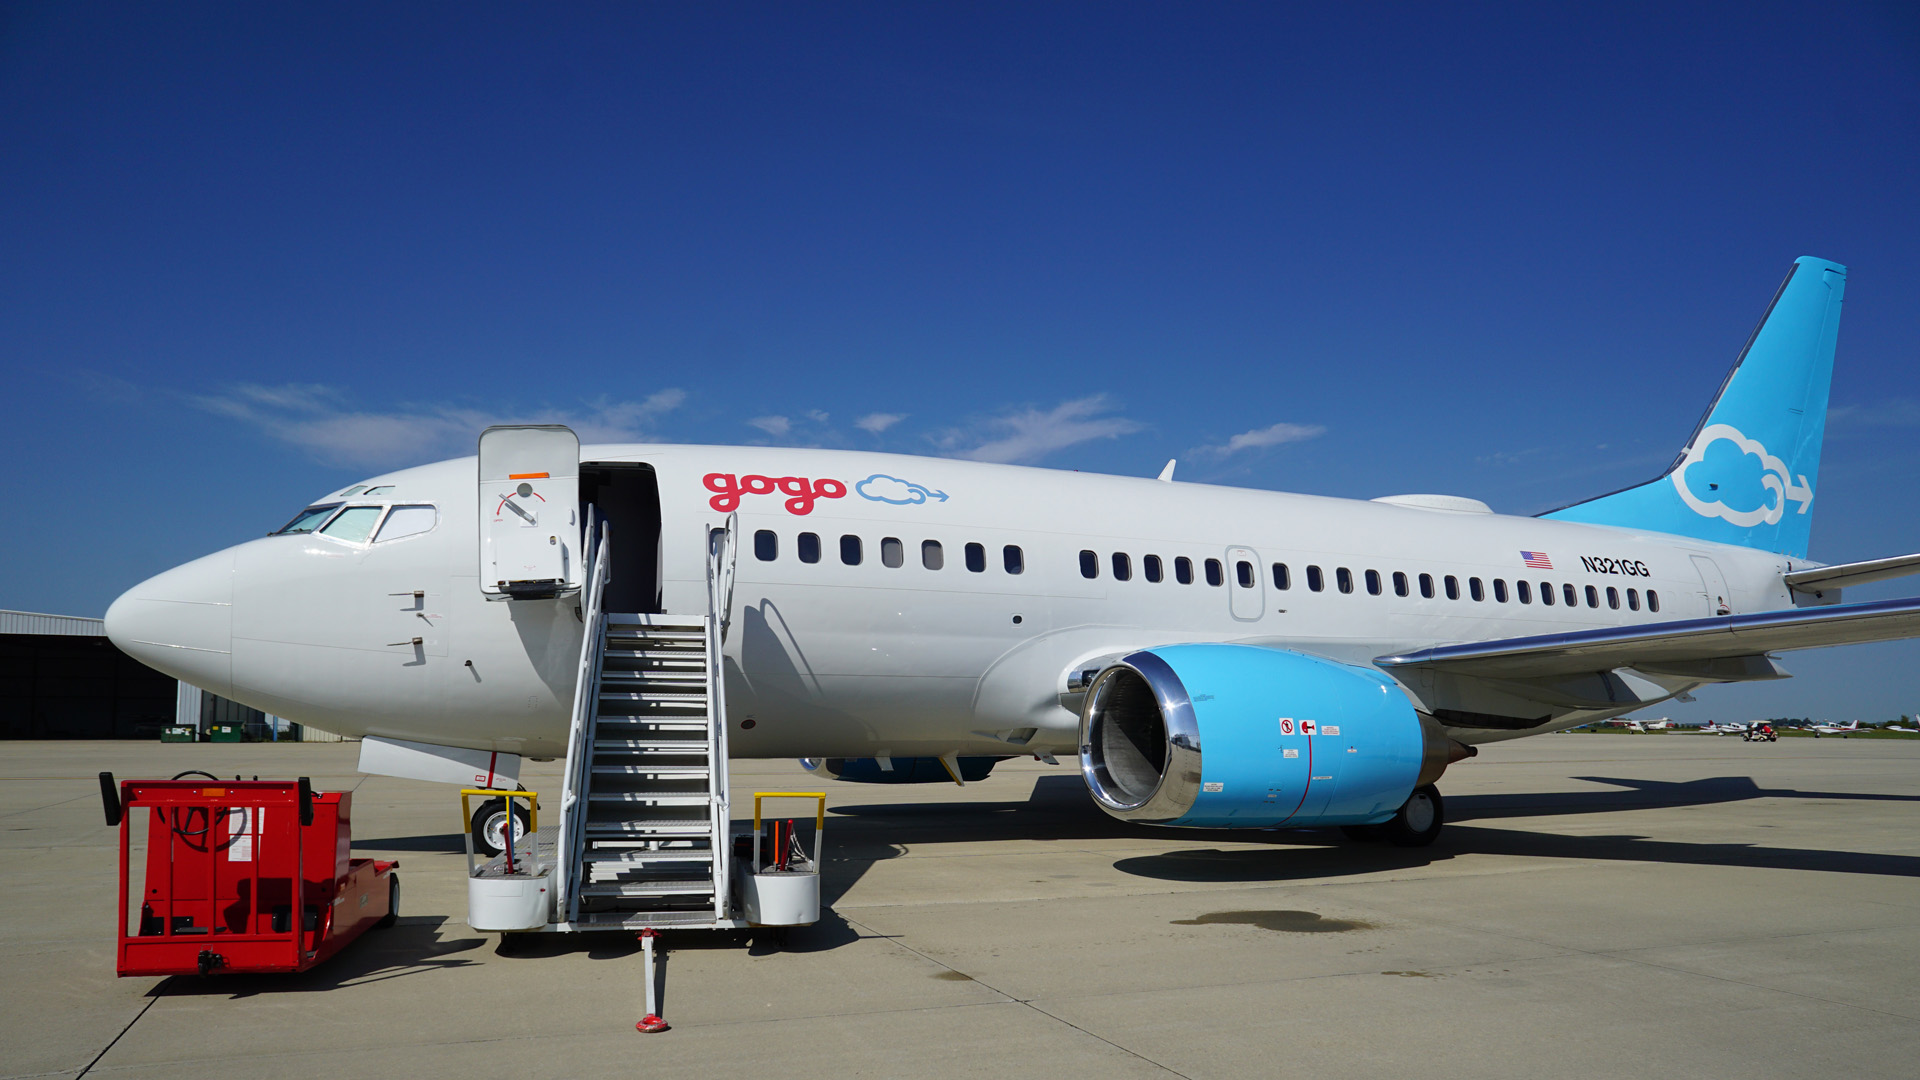 The Jimmy Ray, Gogo's 737 Test Plane